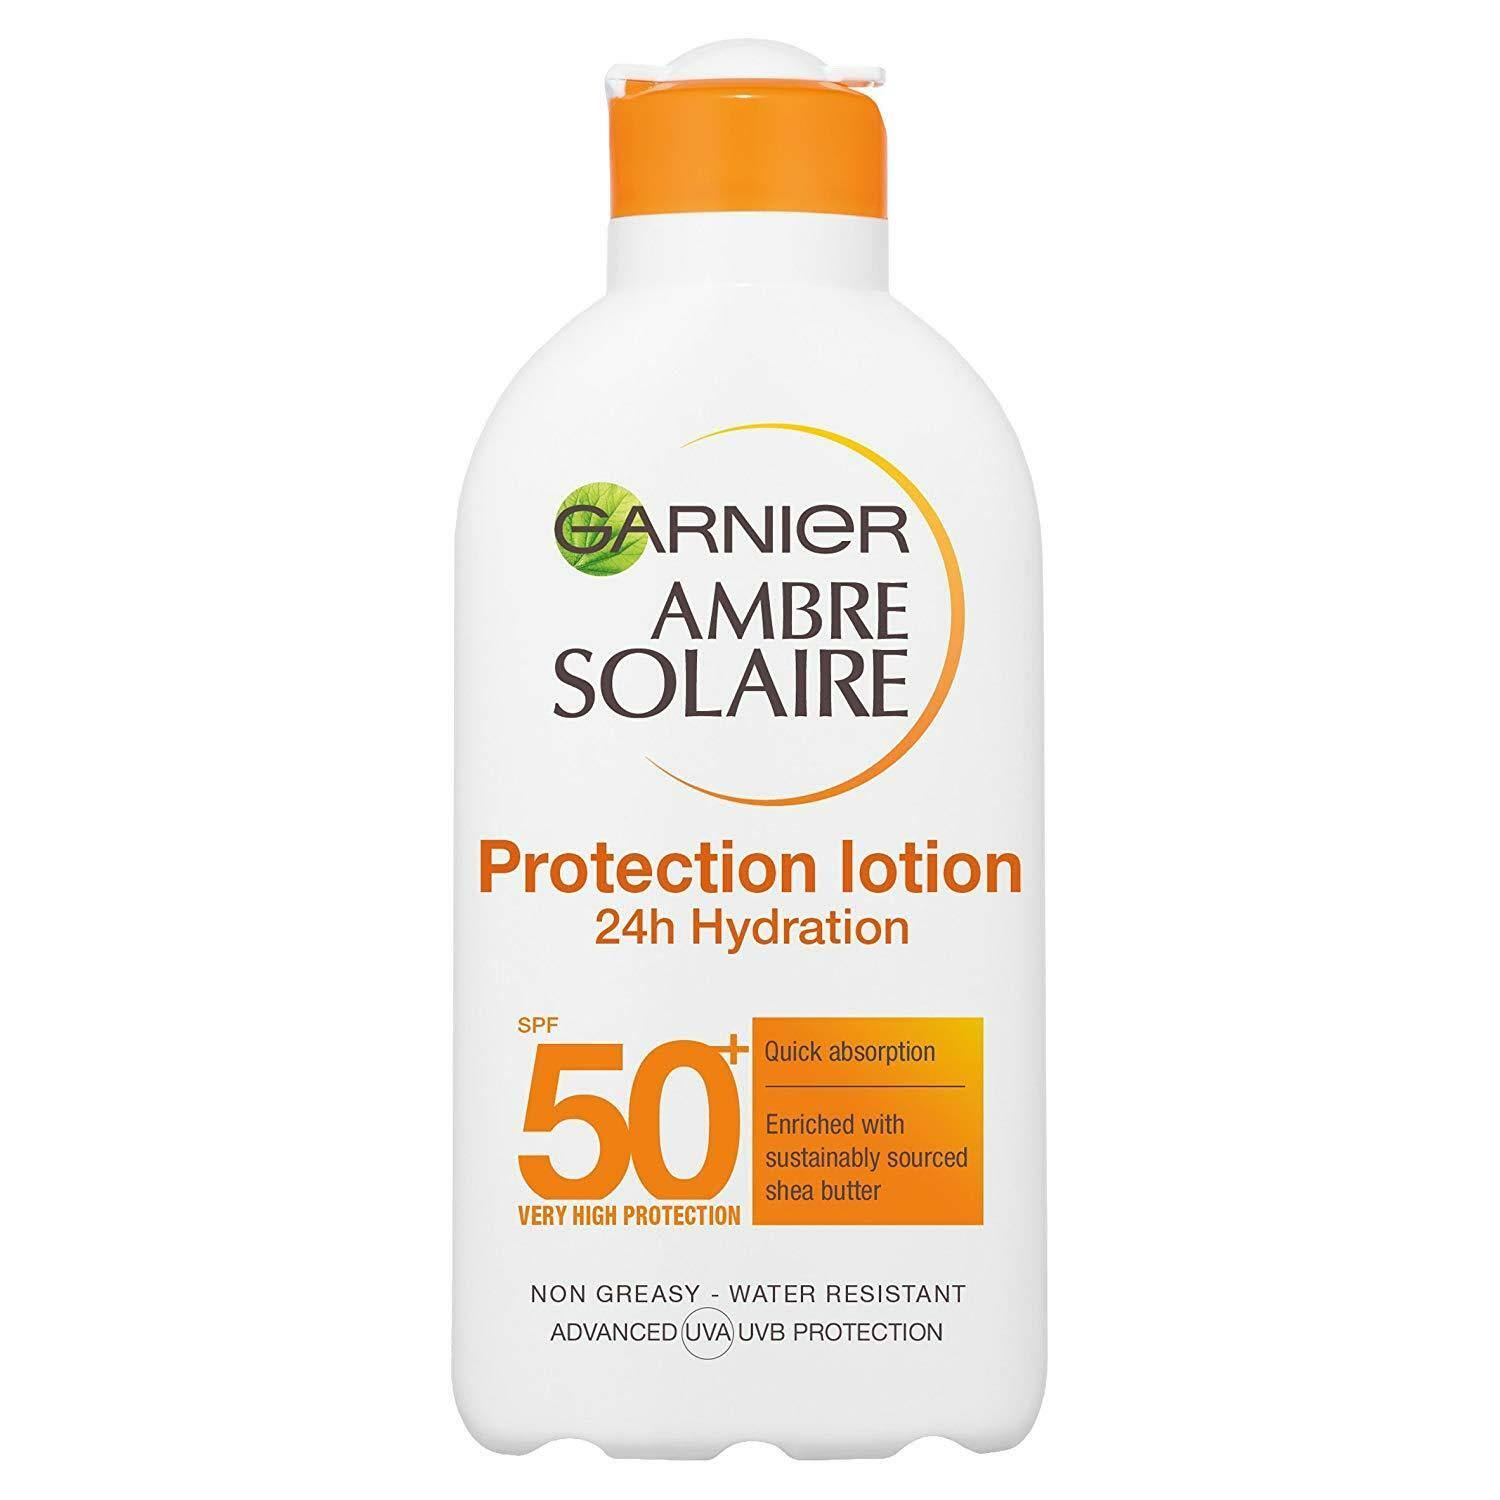 Garnier Ambre Solaire Sun Protection Cream - Shea Butter, SPF50, 200ml